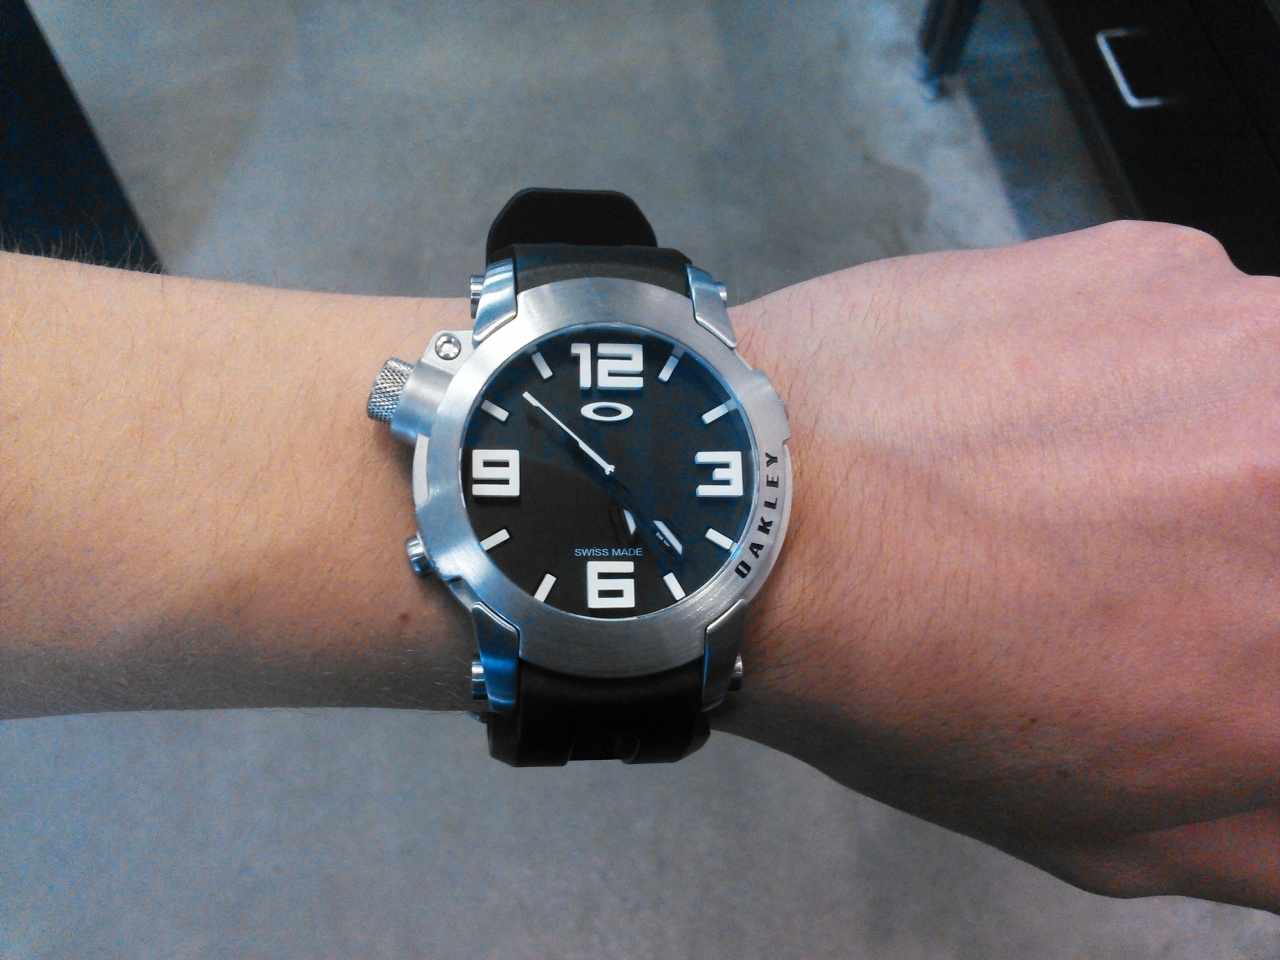 New Kill Switch watch at my vault